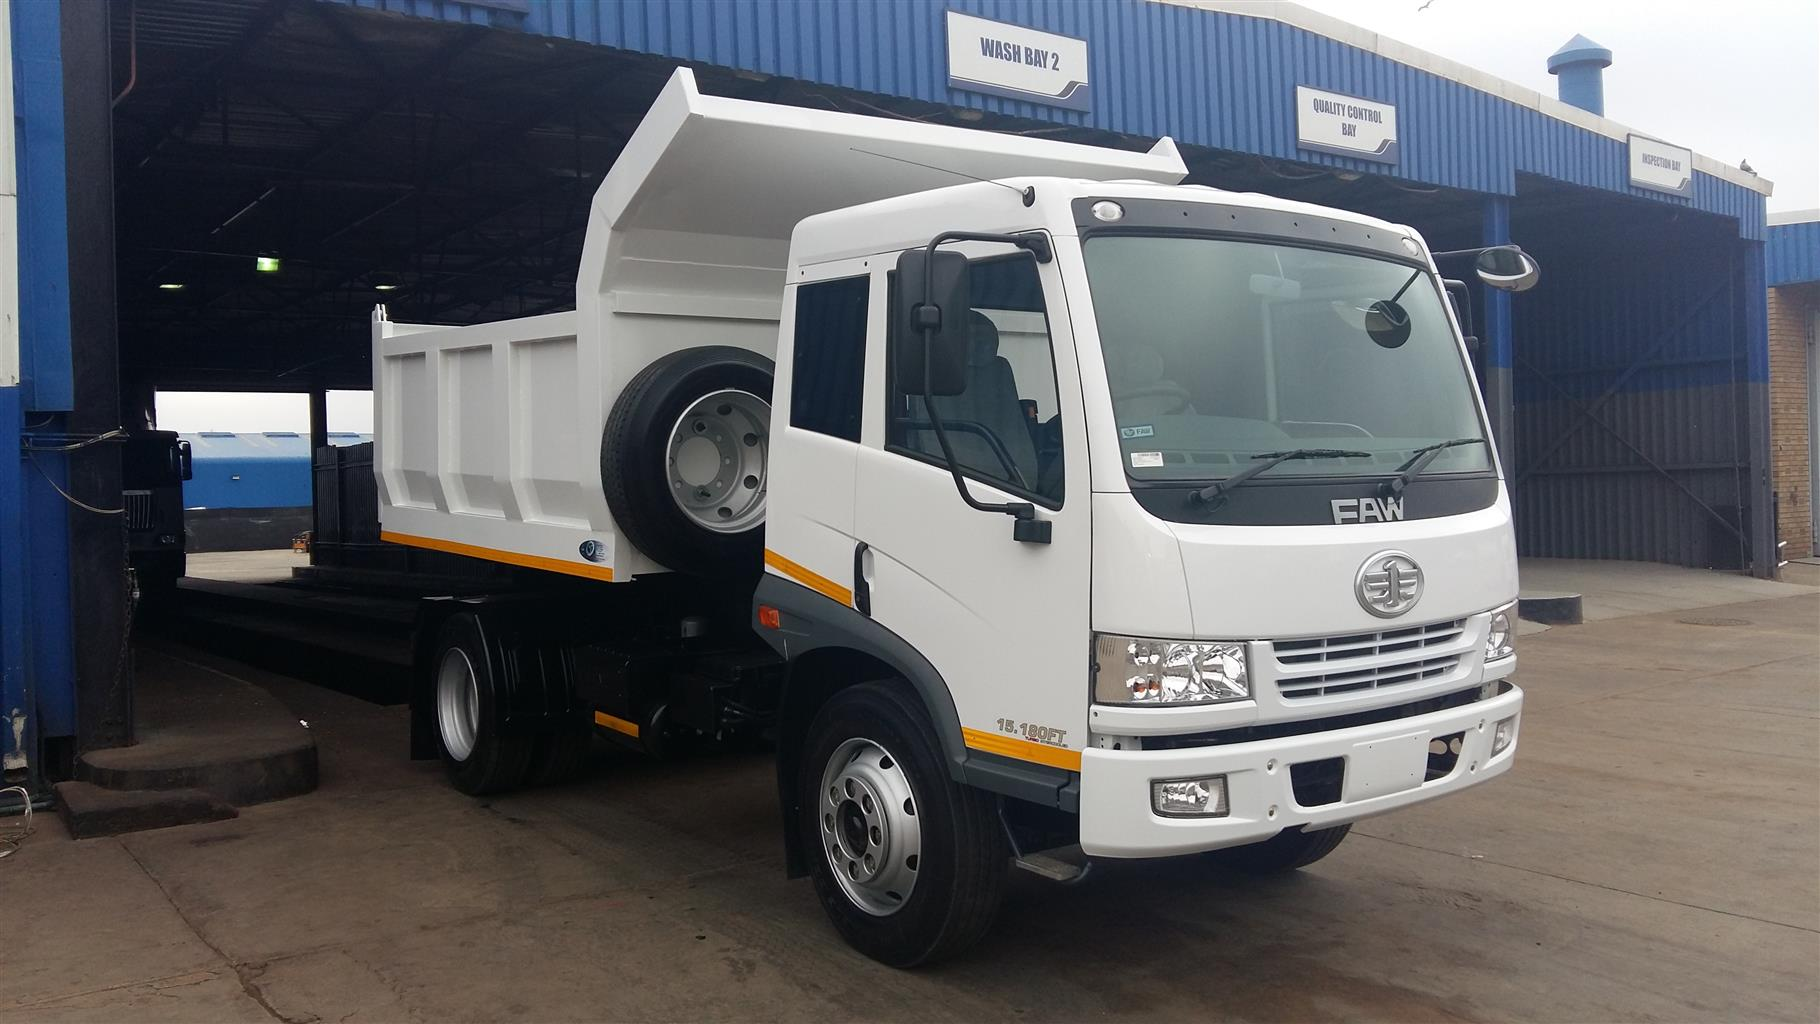 2018 FAW 8 Ton Complete With Dropside Body, Including Free 60000Km/1Year Service Plan Demo